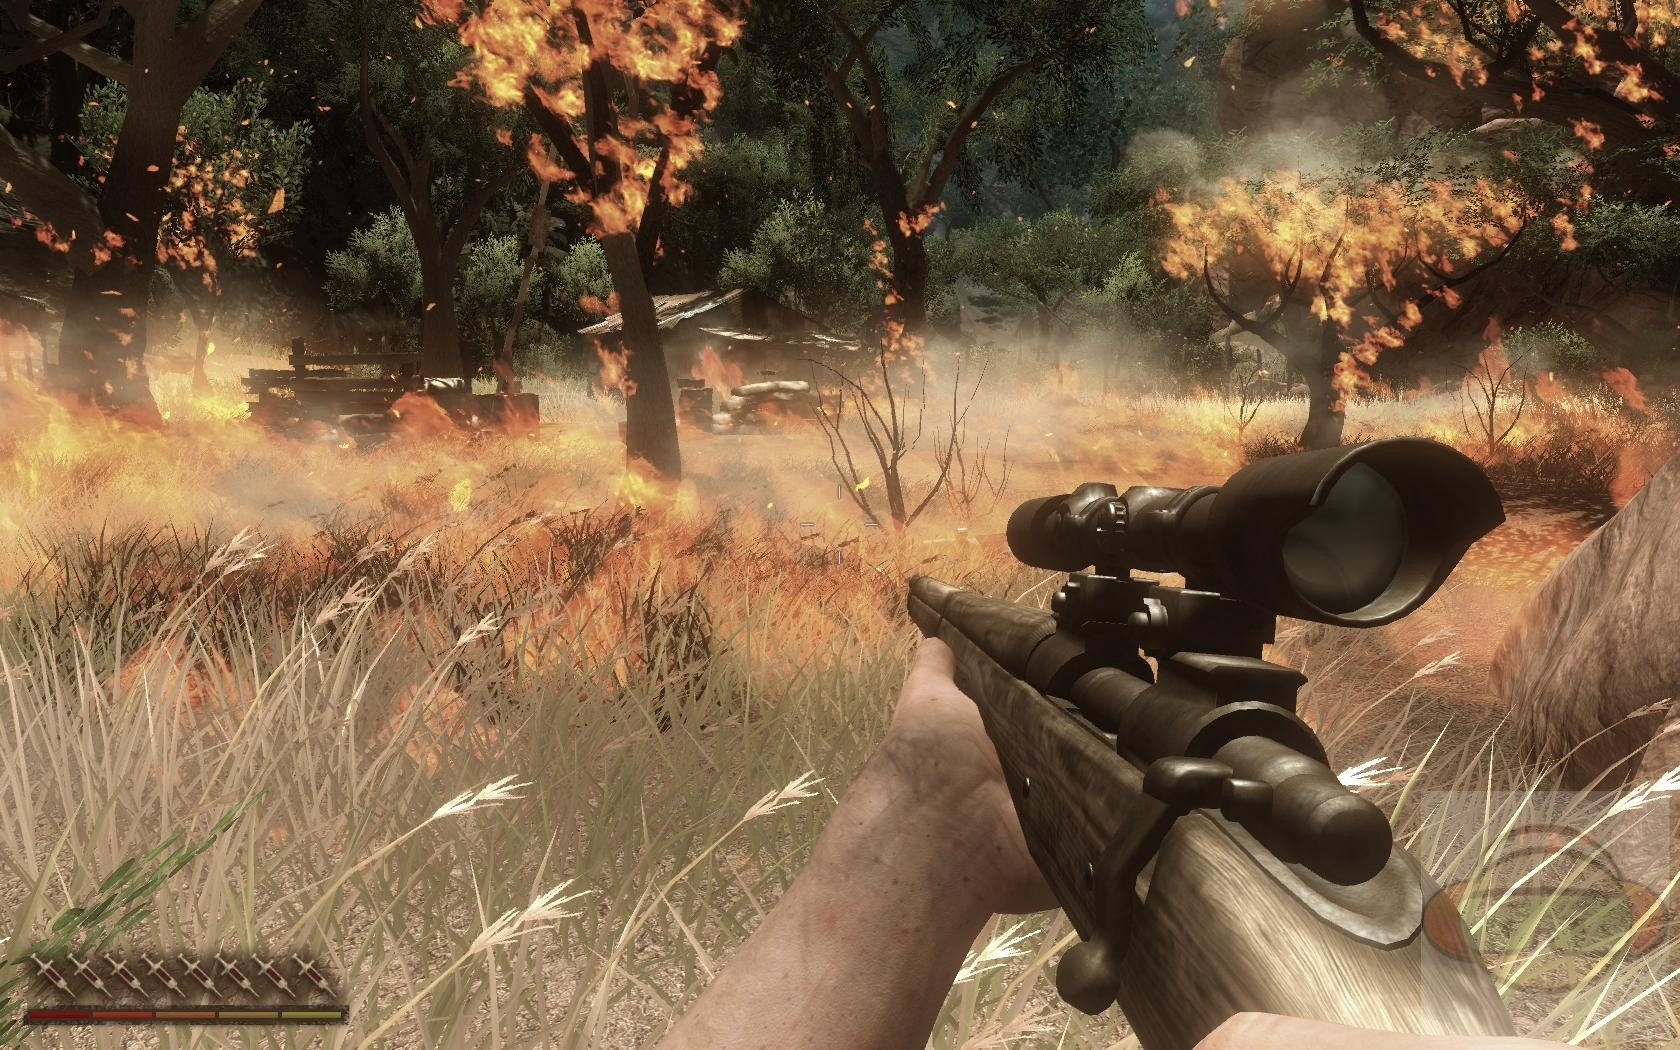 far cry 2 gameplay ending a relationship